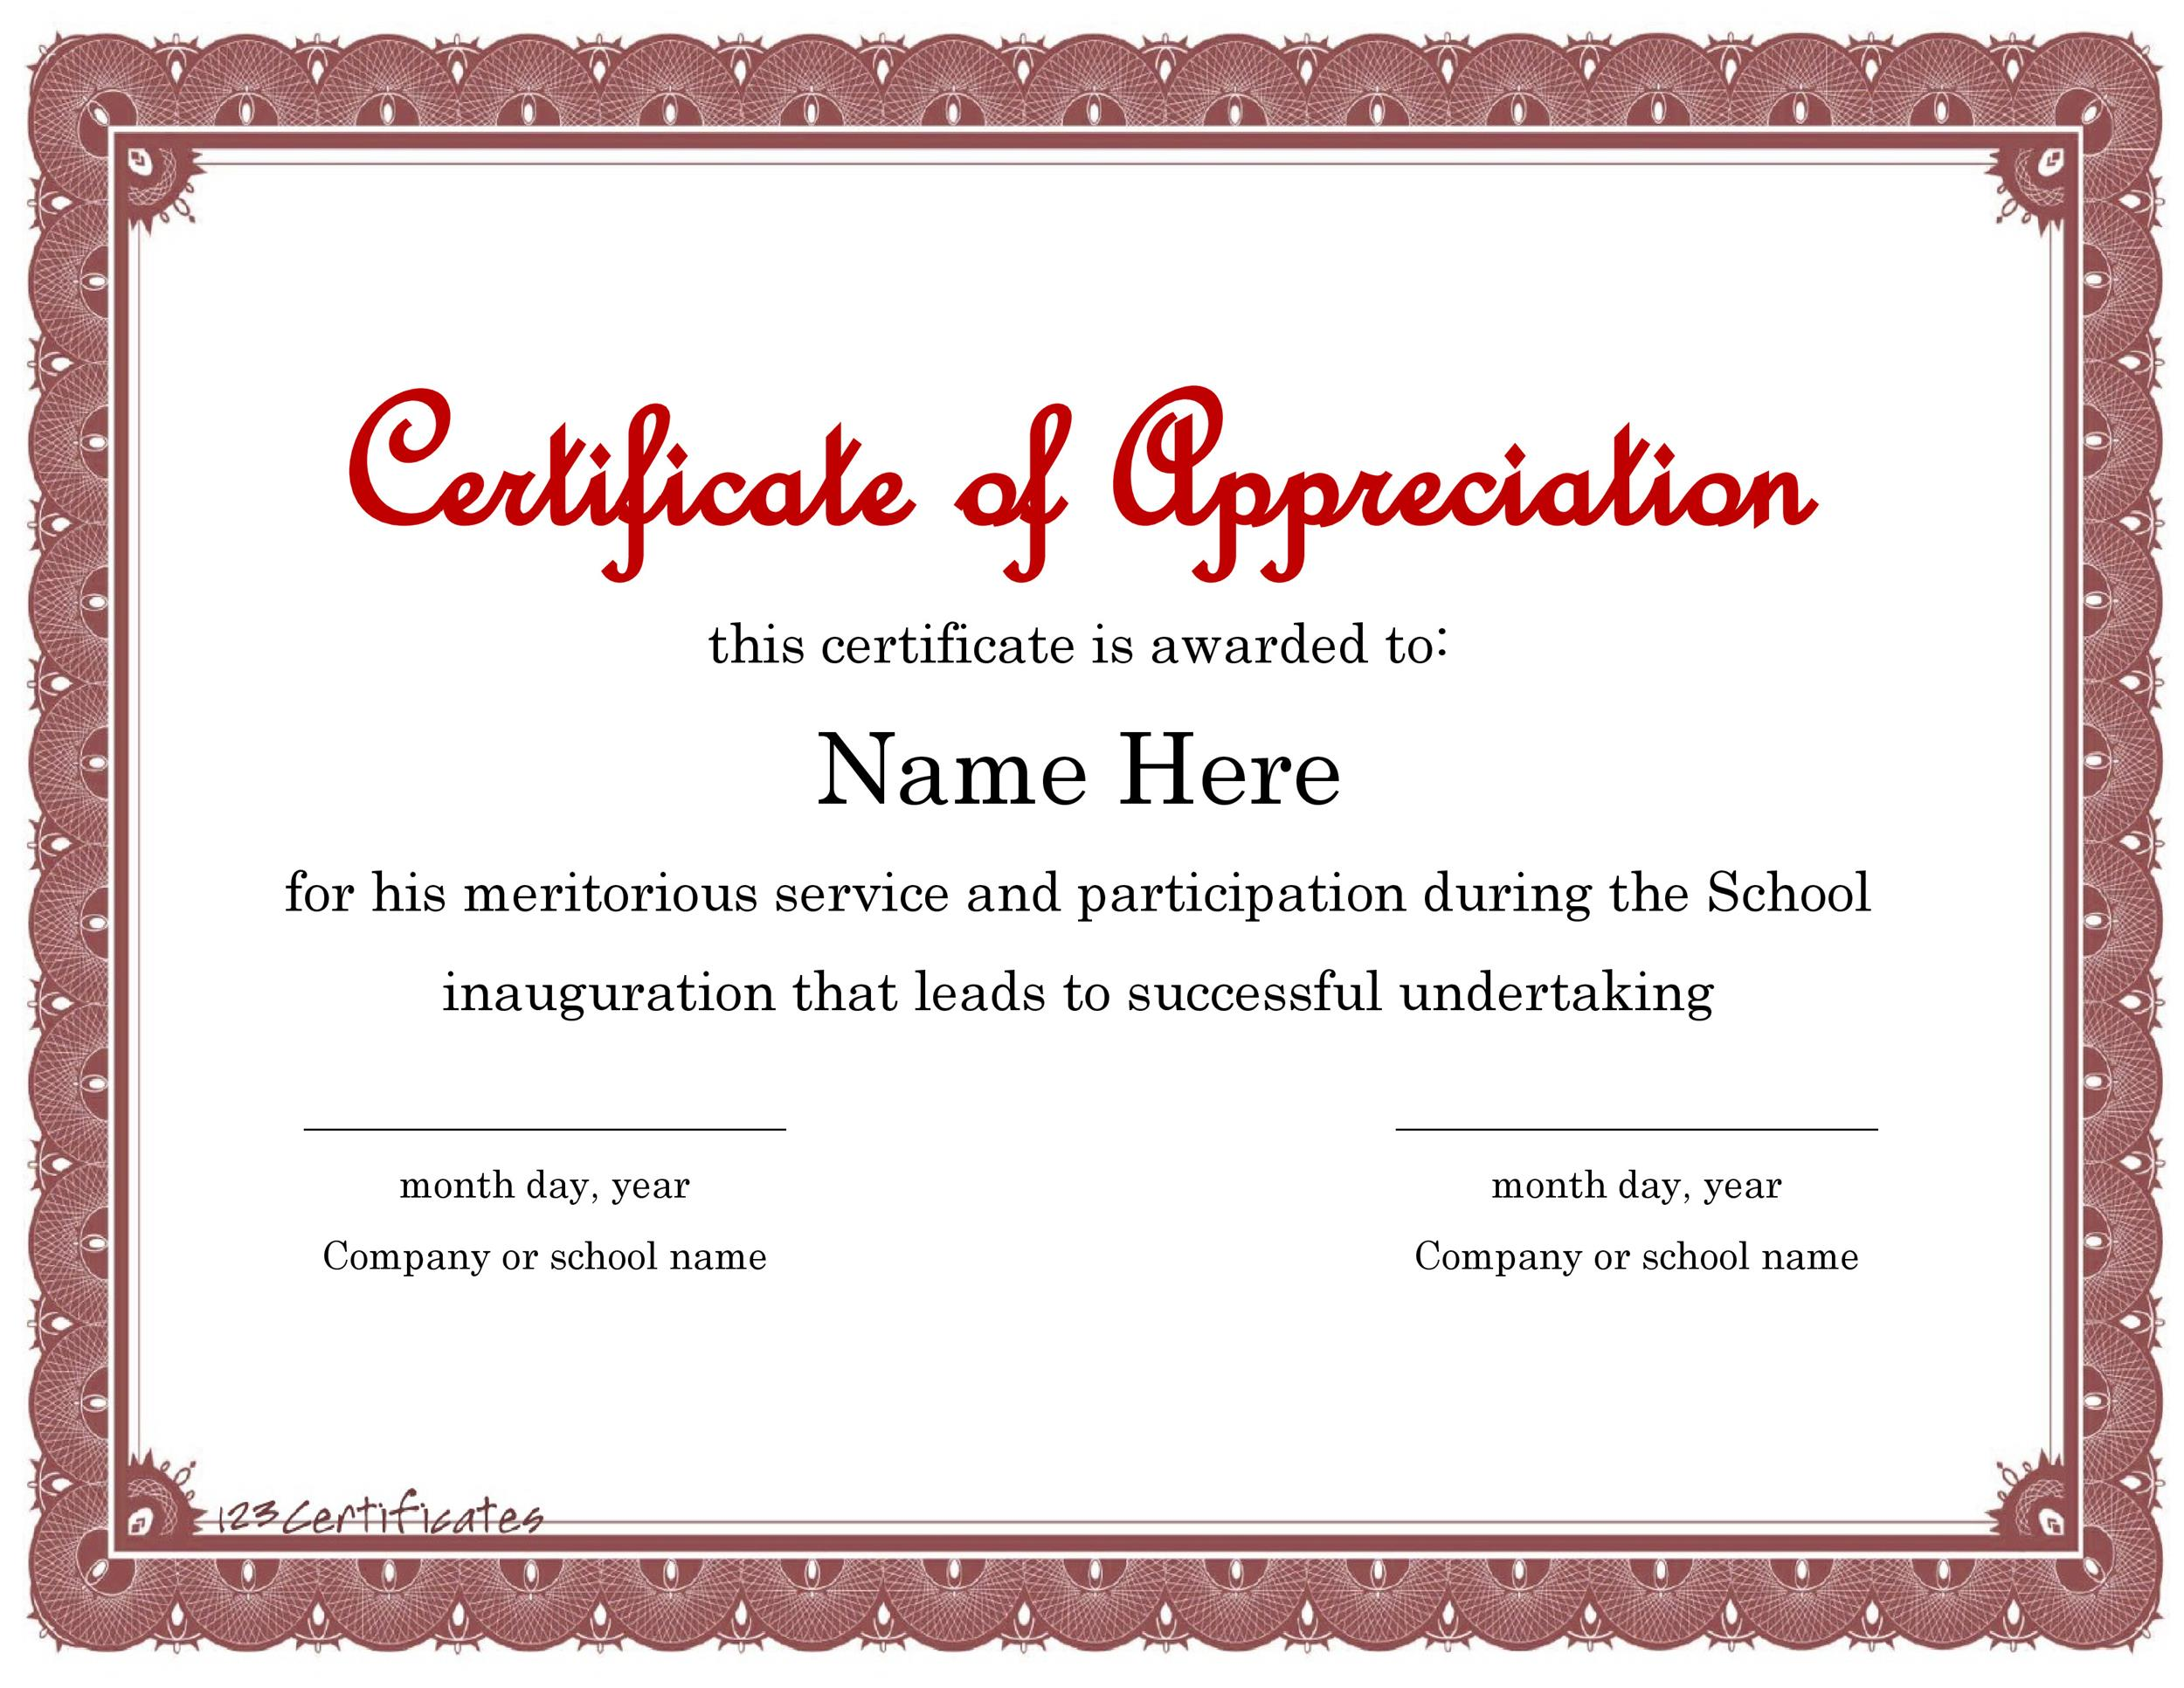 Printable Certificate Of Appreciation 01  Appreciation Certificates Wording